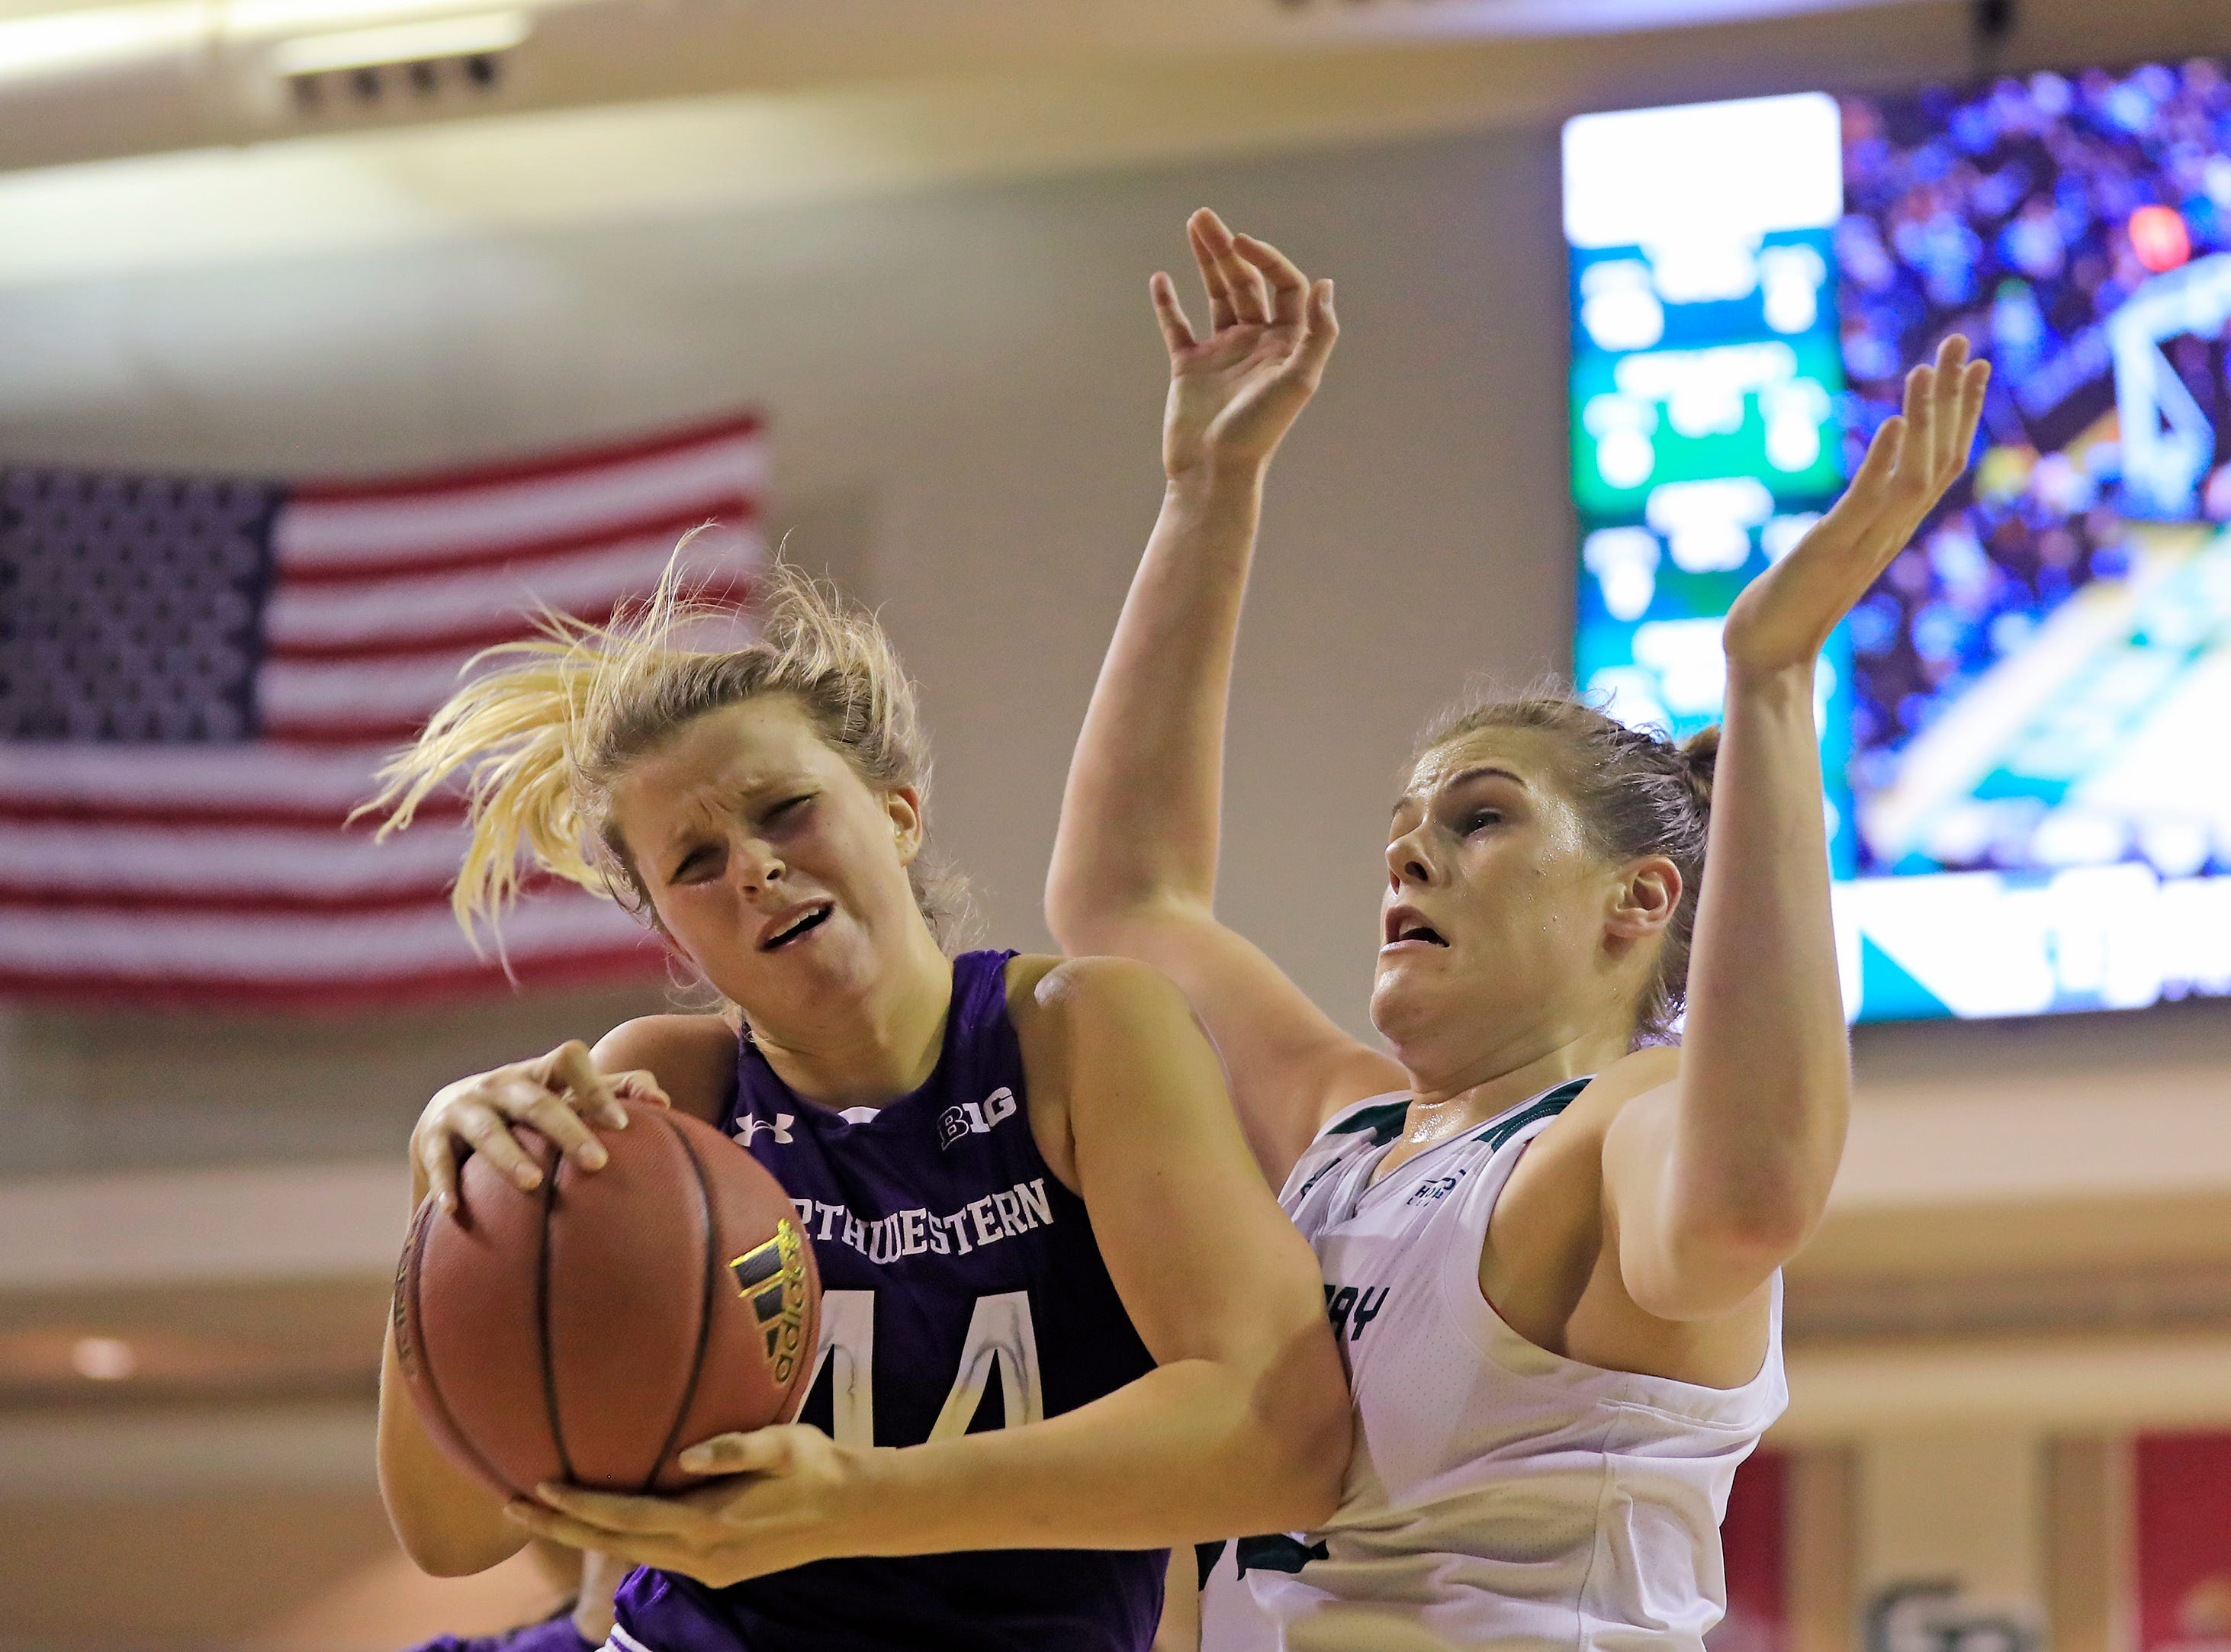 Northwestern Wildcats forward/center Abi Scheid (44) grabs a rebound in the final minute against Green Bay Phoenix forward/center Mackenzie Wolf (42) in a women's NCAA basketball game at the Kress Center on Tuesday, November 6, 2018 in Green Bay, Wis.